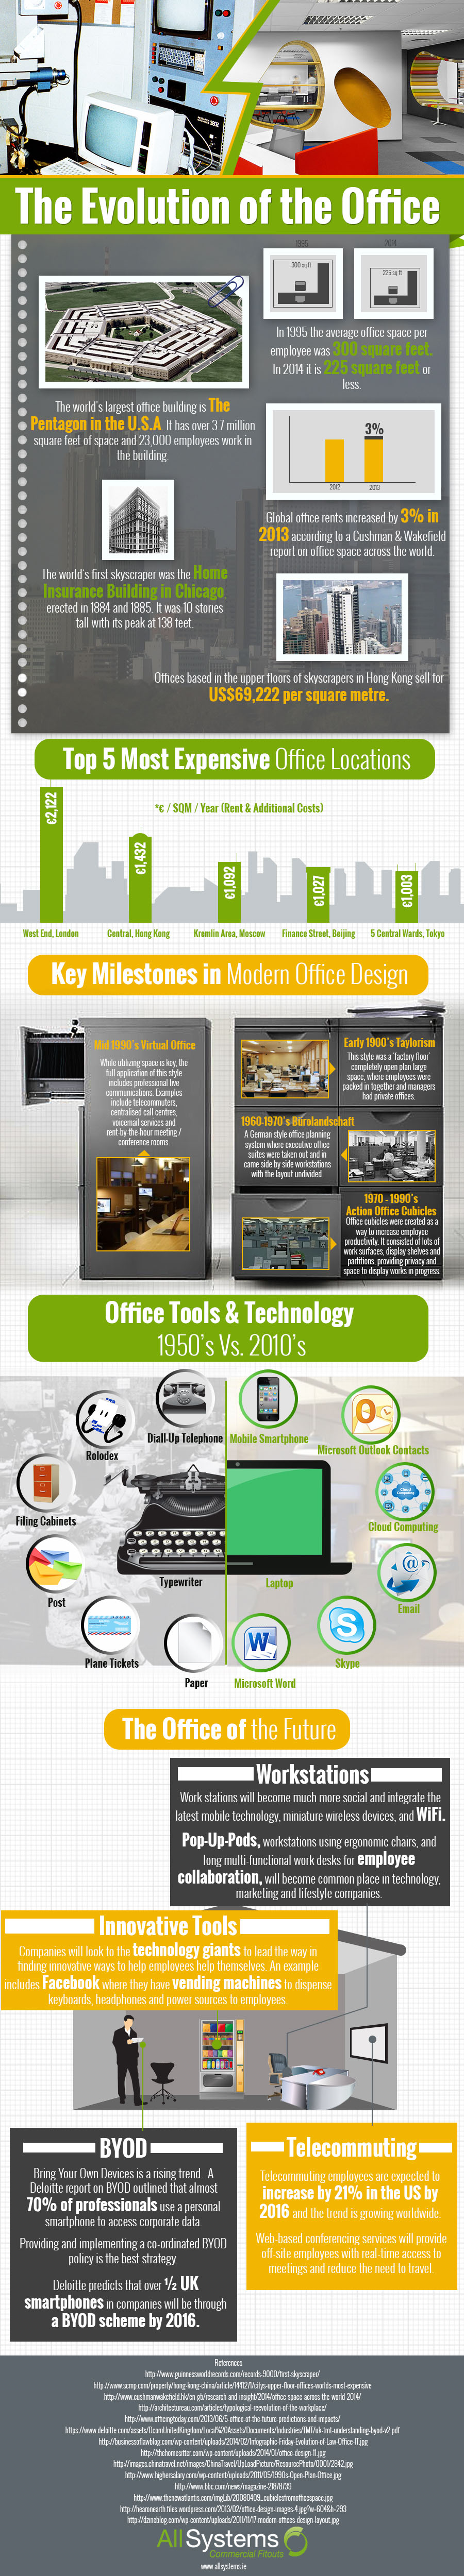 the-evolution-of-the-office-infographic-plaza